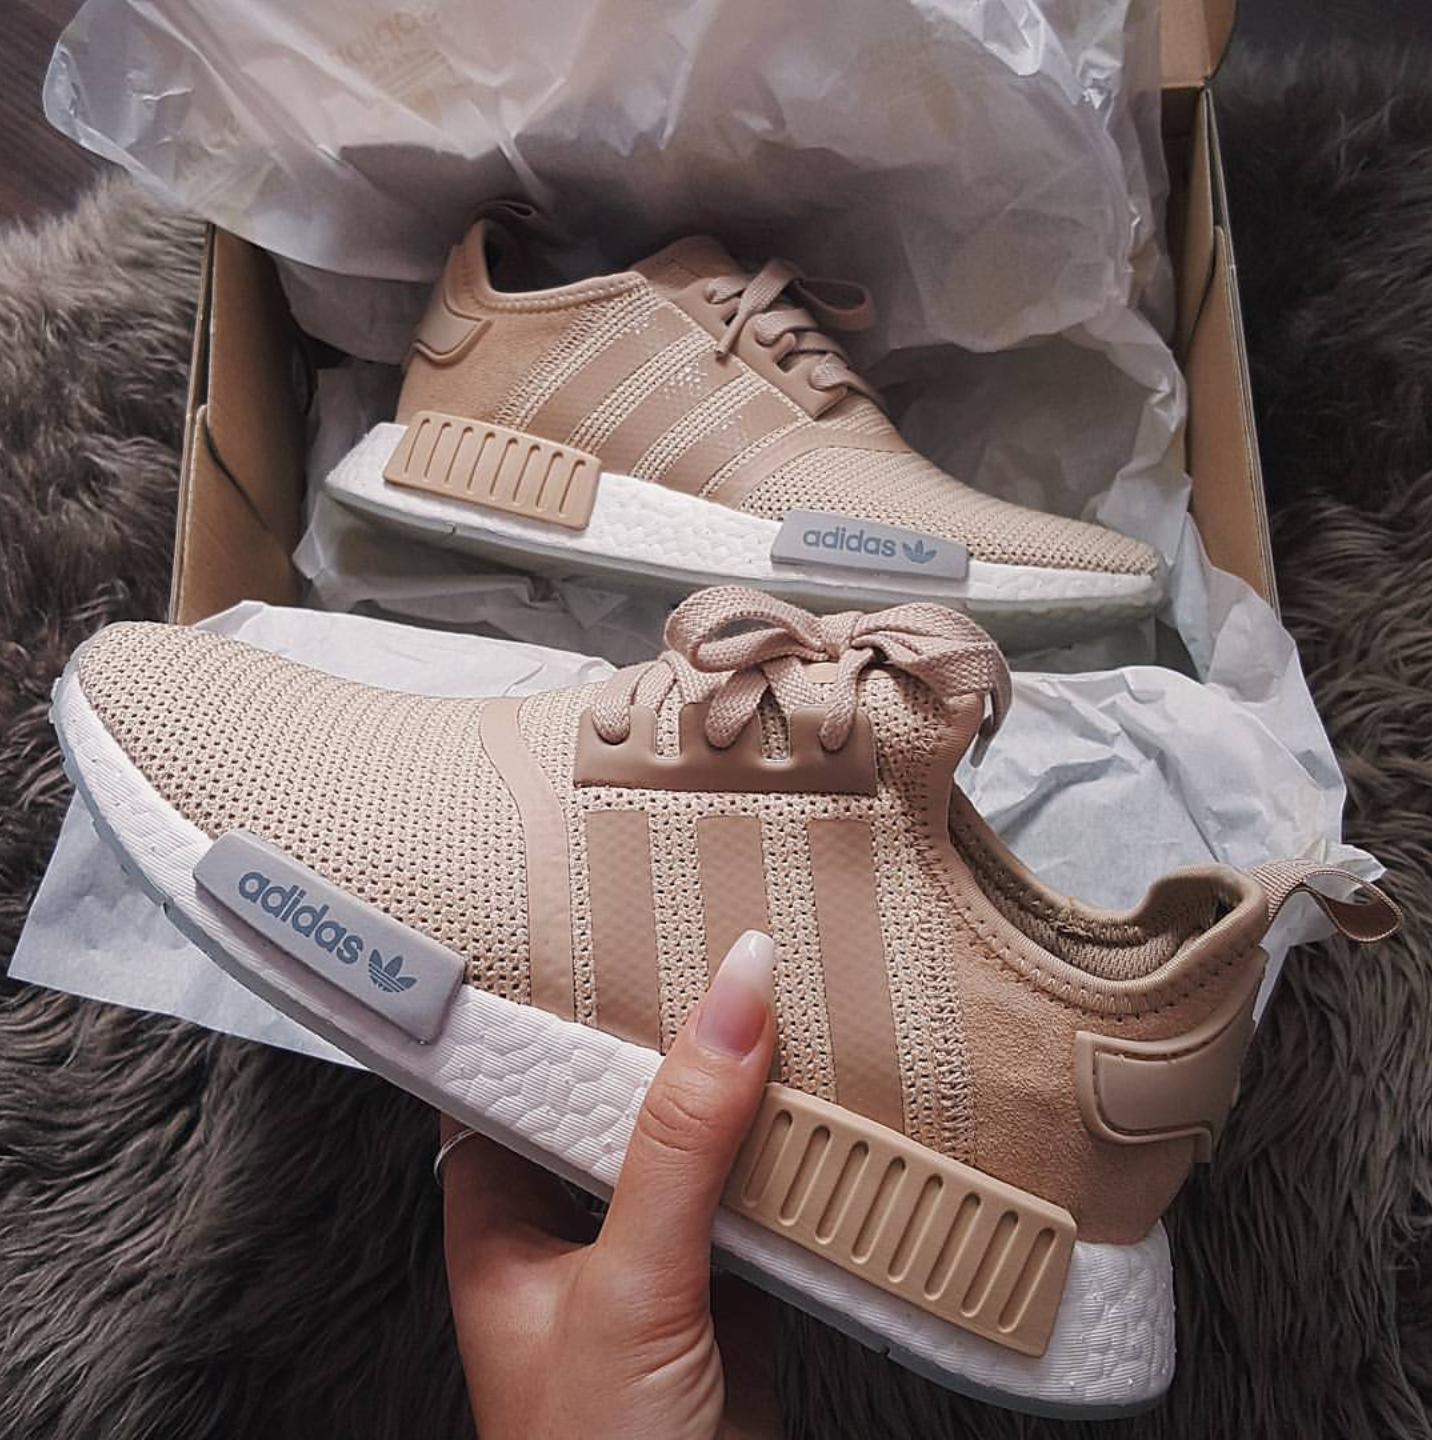 Adidas NMD_R1 | Nmd adidas women, Adidas outfit shoes ...